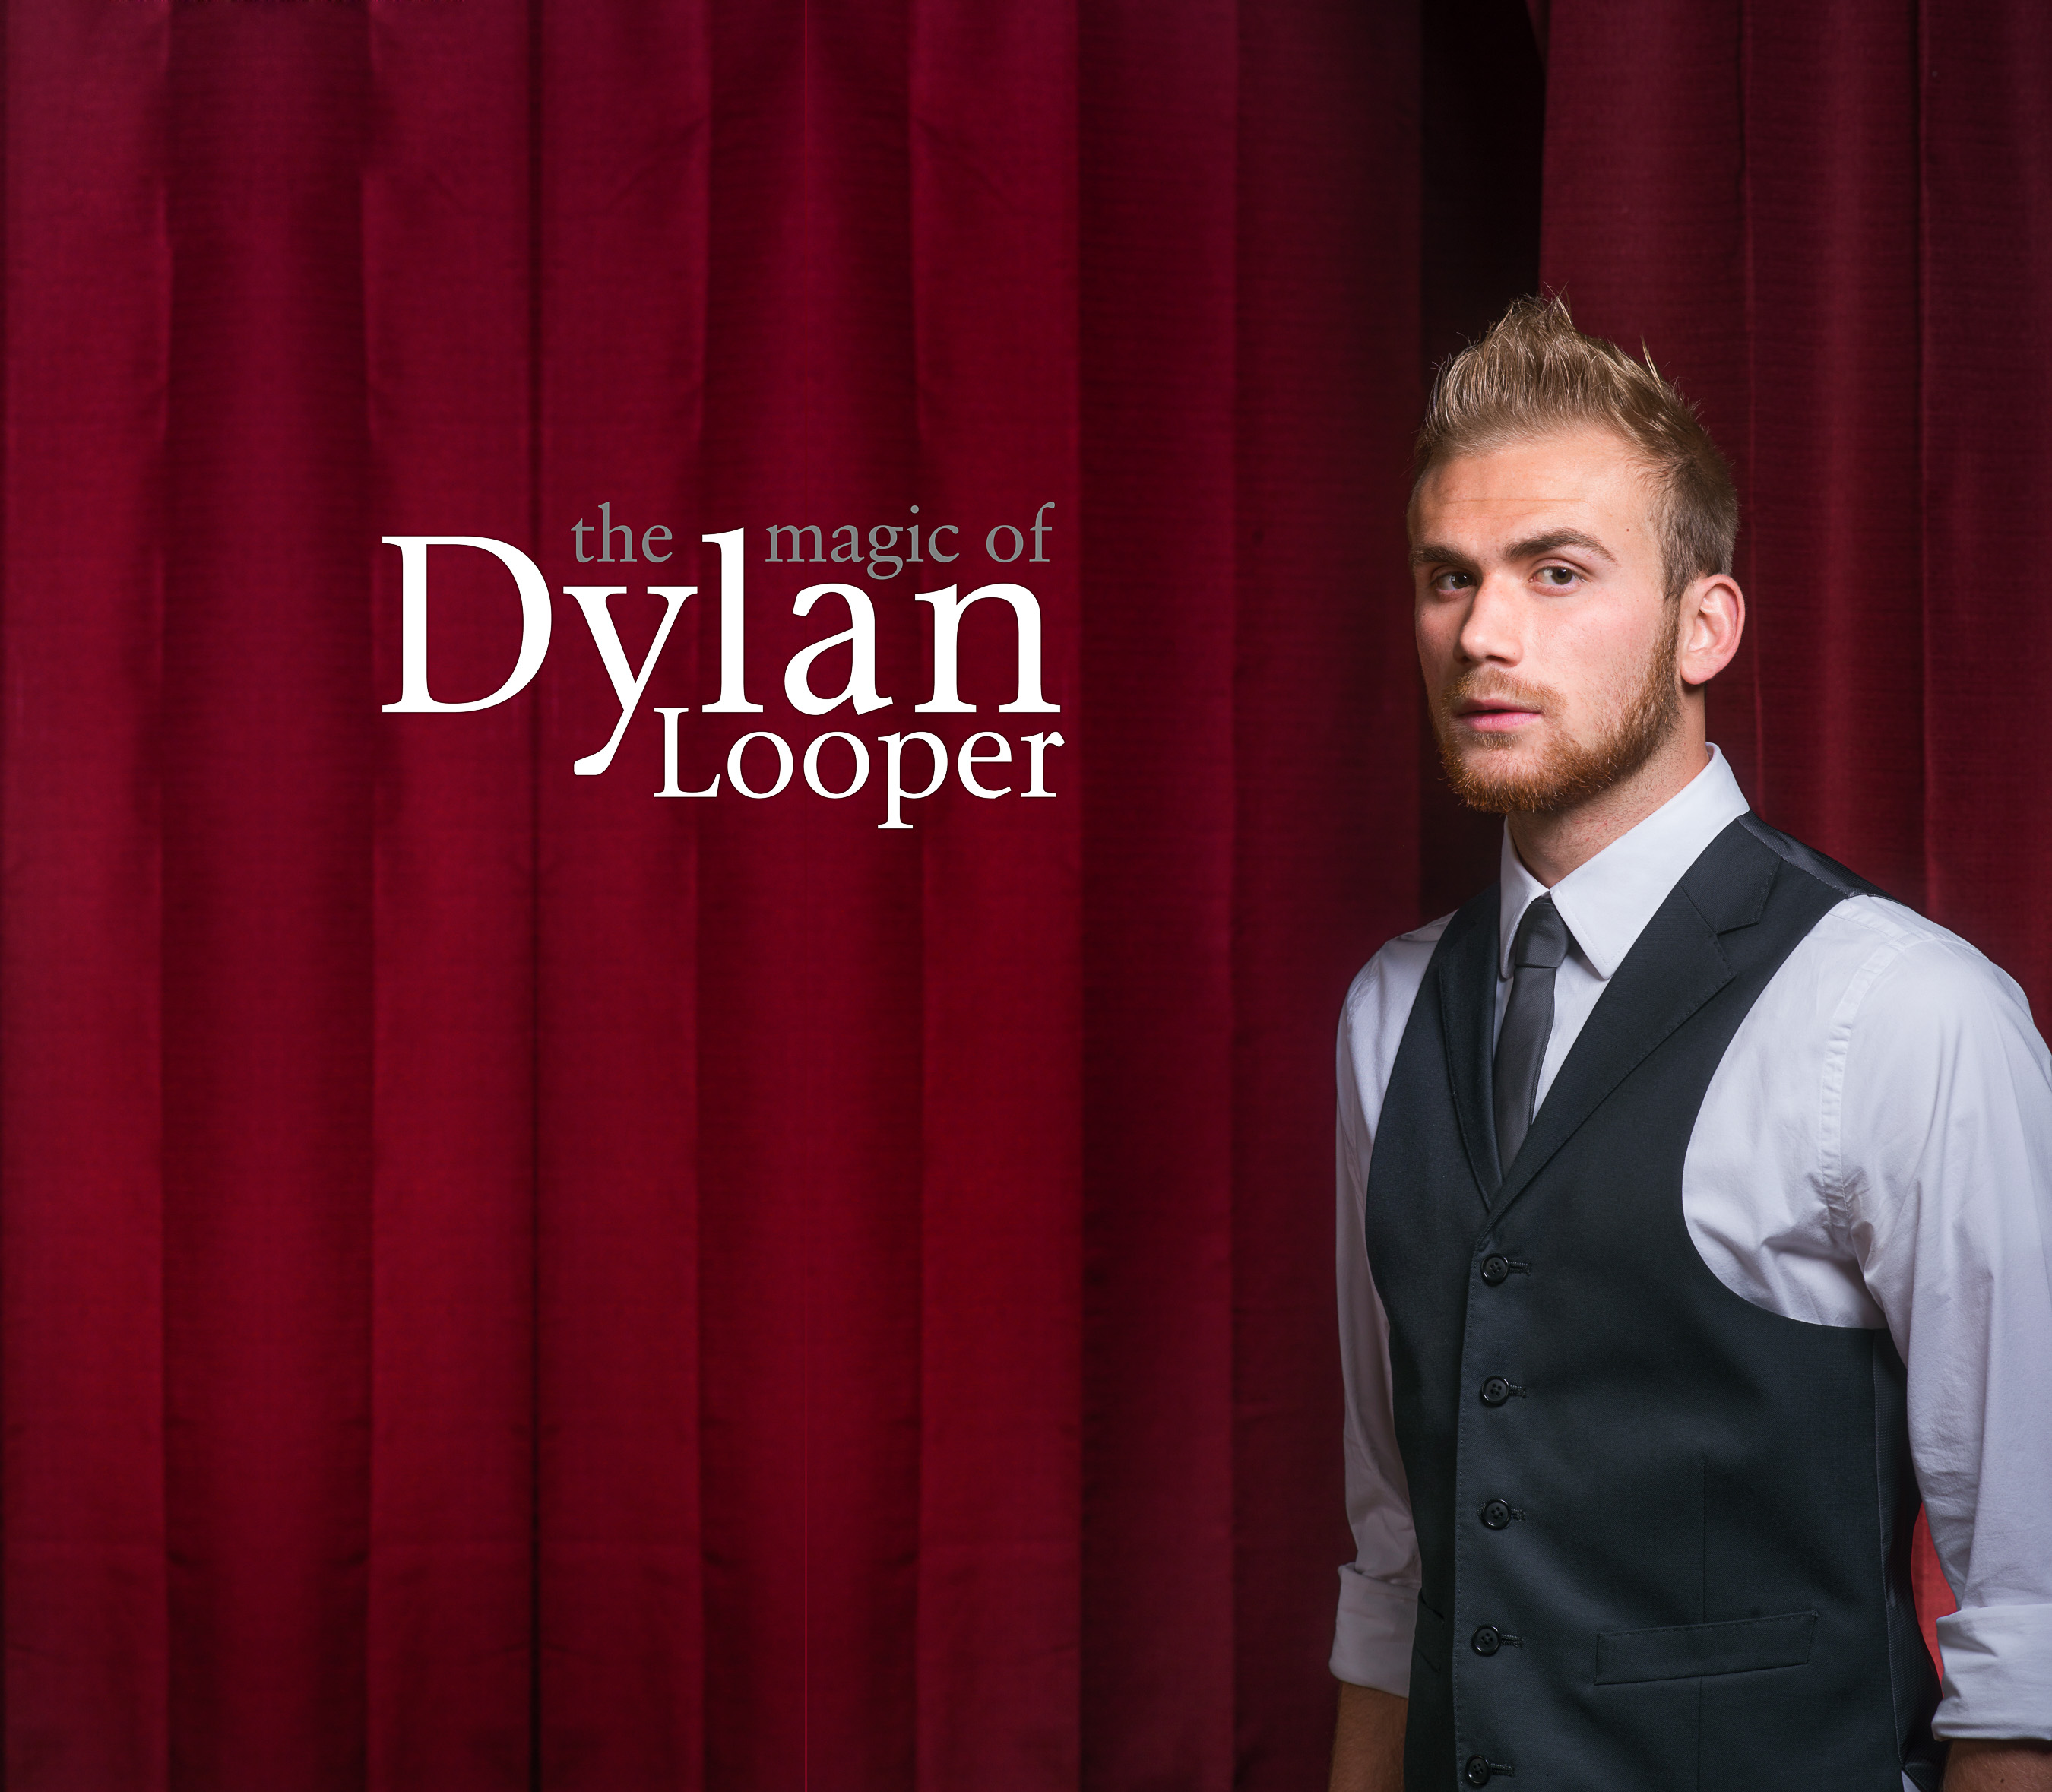 Dylan Looper headshot with name